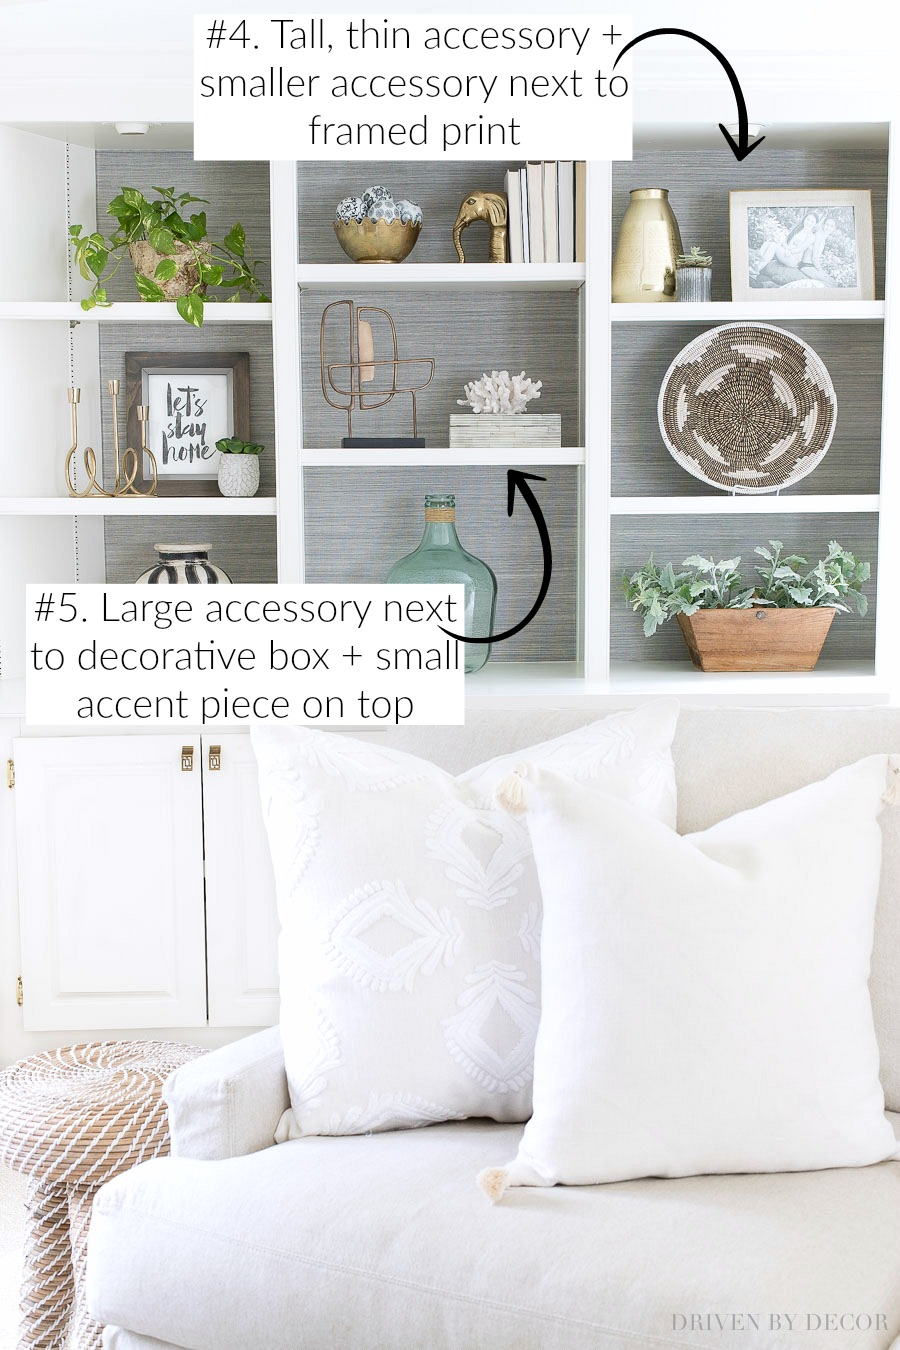 SUPER helpful tips for decorating shelves and bookcases!!